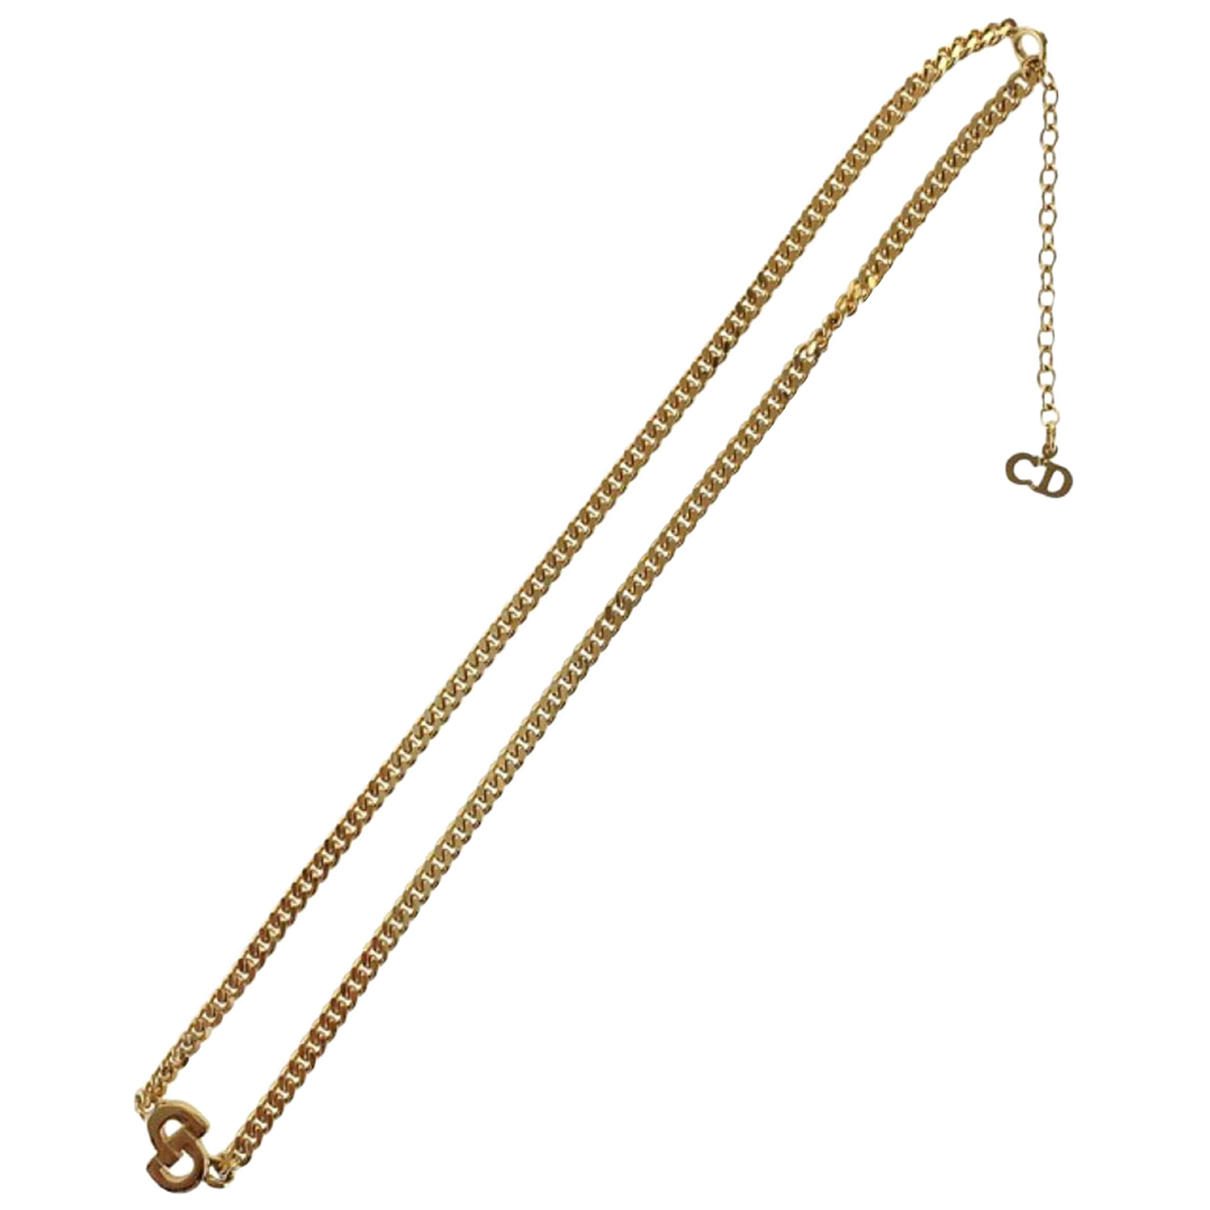 Christian Dior \N Metal necklace for Women \N